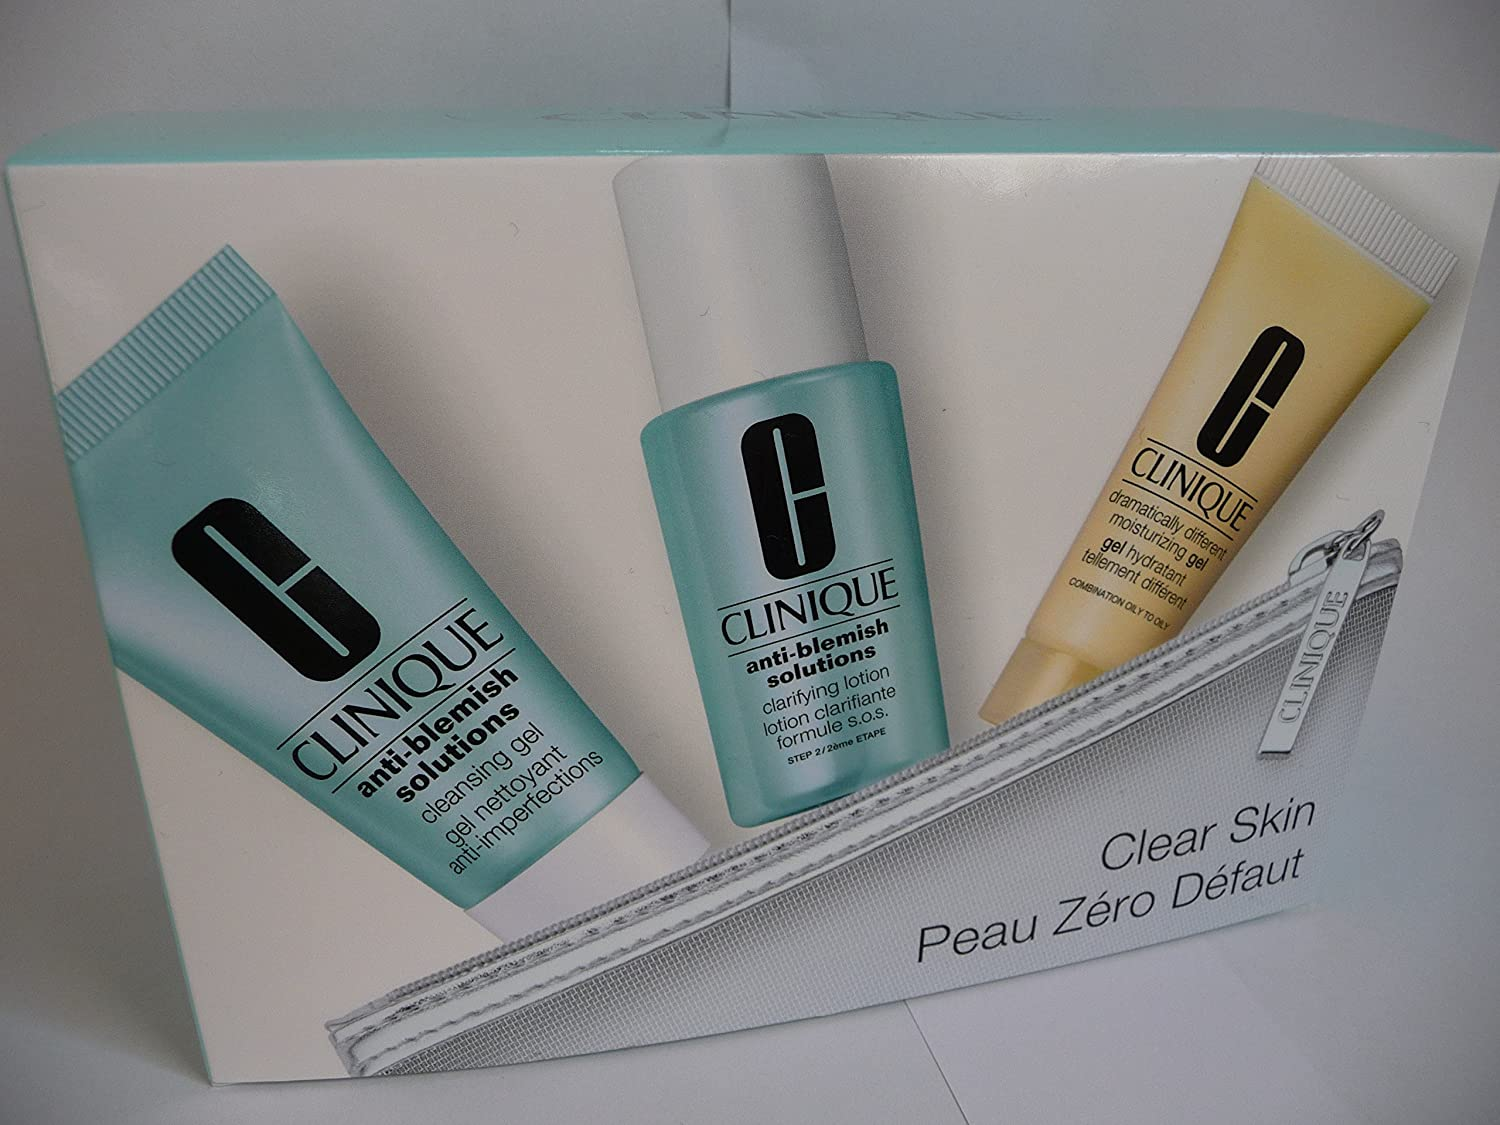 Clinique Anti Blemish Gesichtspflegeset (Cleansing Gel 30 ml + Dramatically Different Moisturizing Gel 15 ml + Clarifying Lotion 30 ml) 20714883294